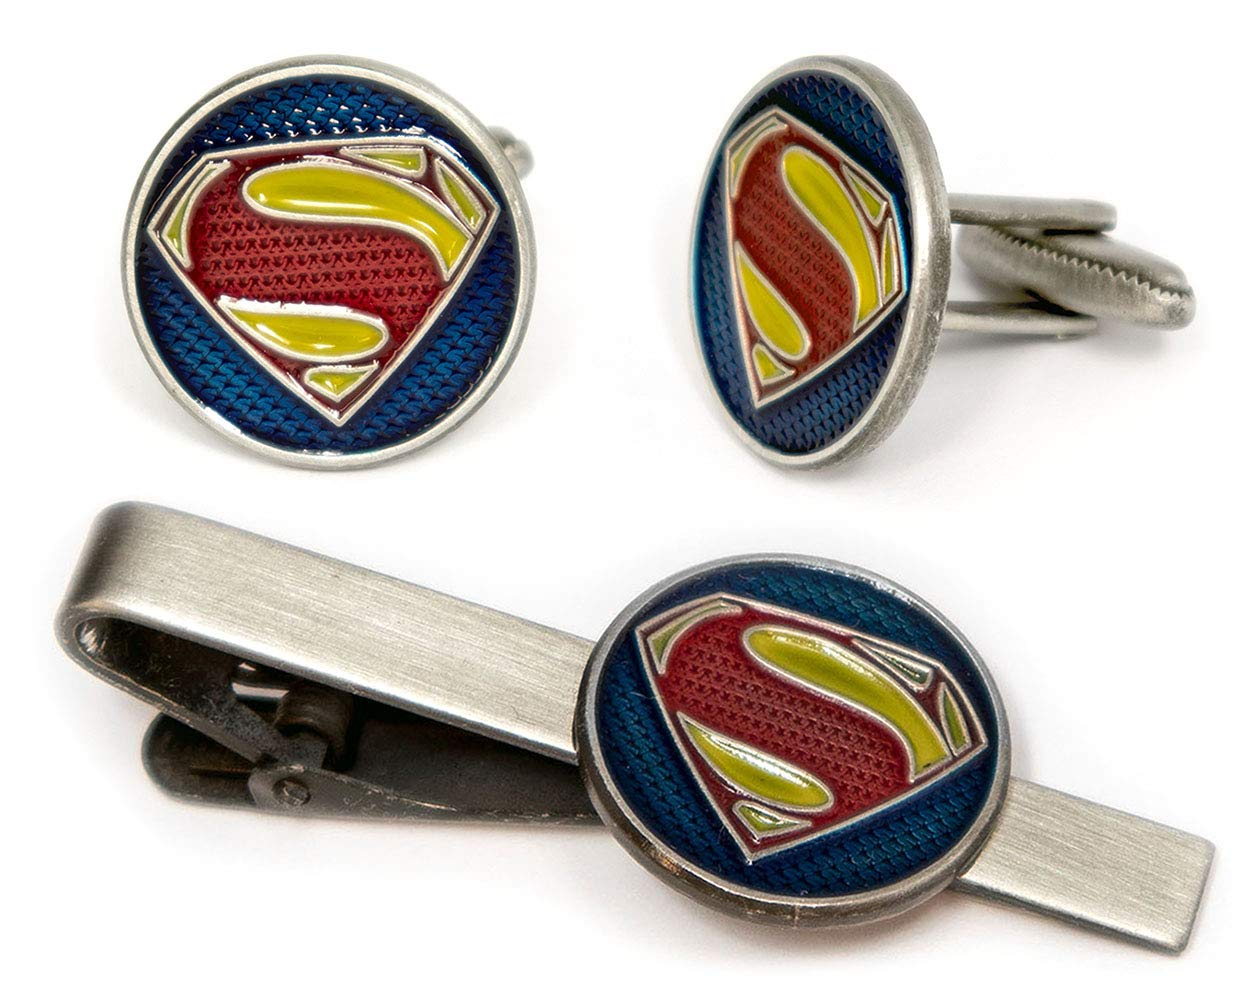 SharedImagination Superman Tie Clip, Krypton Cufflinks, DC Comics Batman vs Superman Tie Tack Jewelry, Nightwing Cuff Links Link Wedding Party Gift, Young Justice League Avengers Groomsmen Gifts by SharedImagination